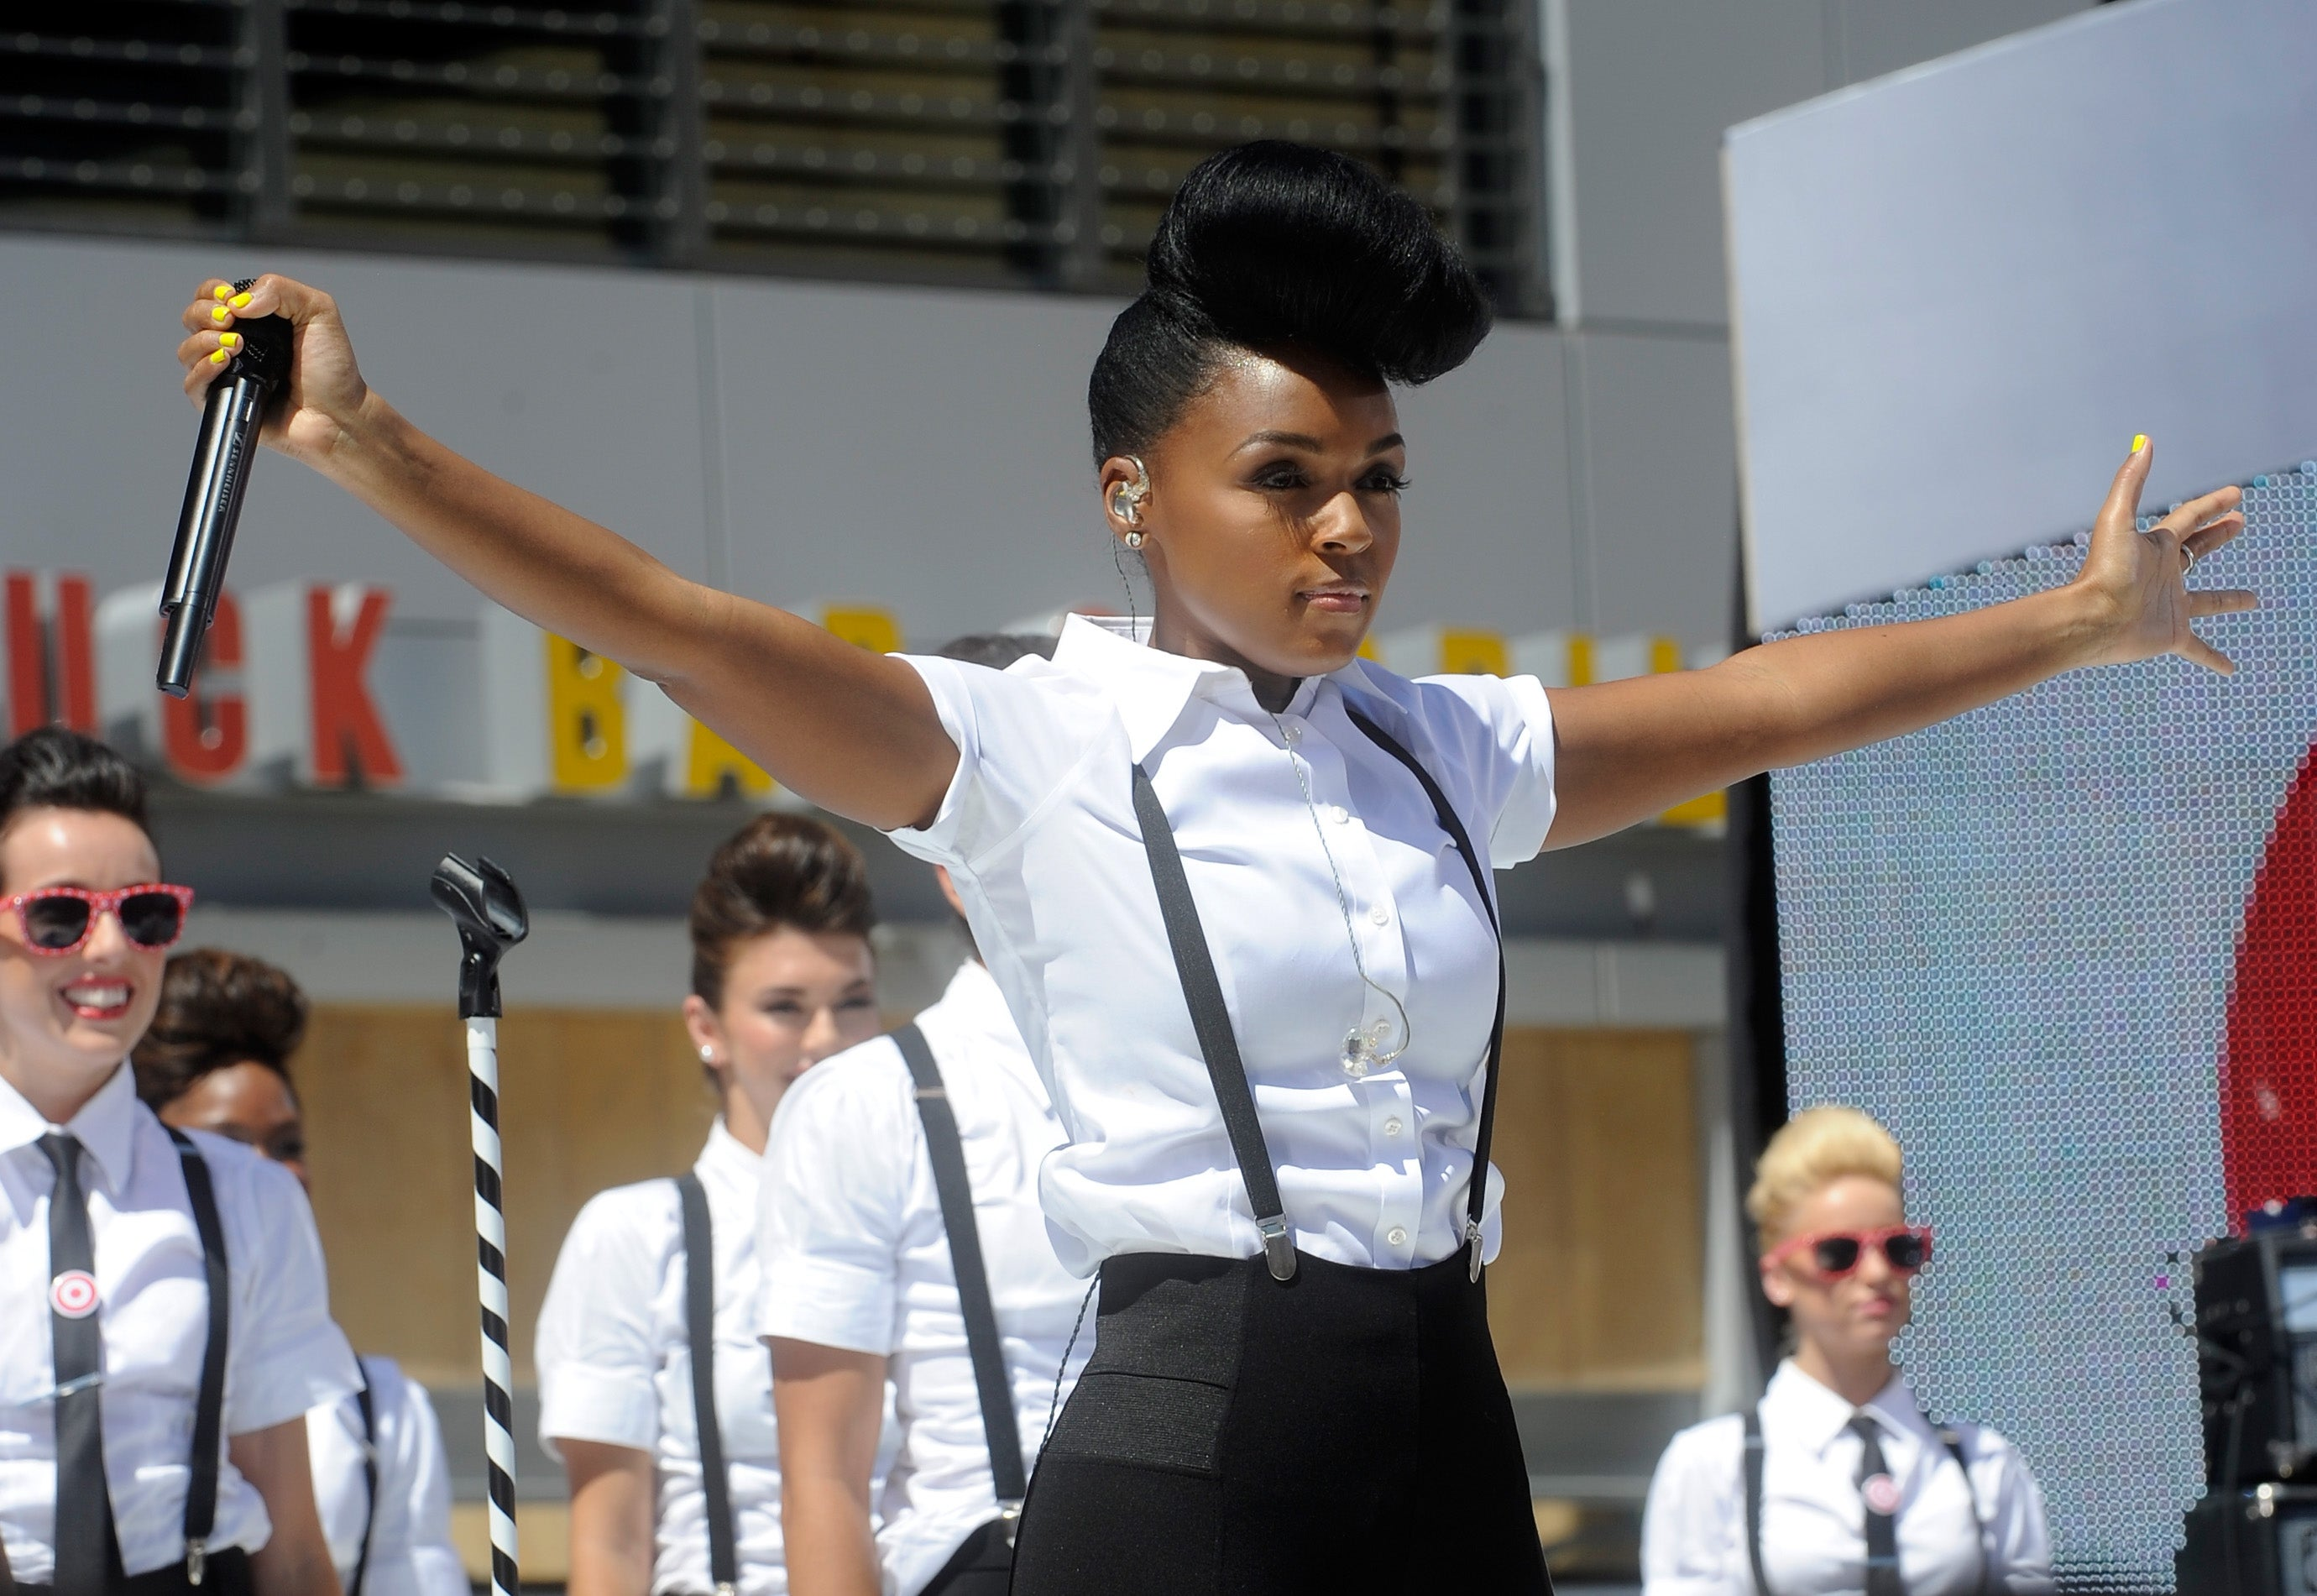 Recording Artist Janelle Monae performs onstage at 106 & Park Live presented by Target during the 2013 BET Exeperience at L.A. LIVE on June 28, 2013 in Los Angeles, California. She stands, arms outspread, her black suspenders standing out against her white, short-sleeved shirt.